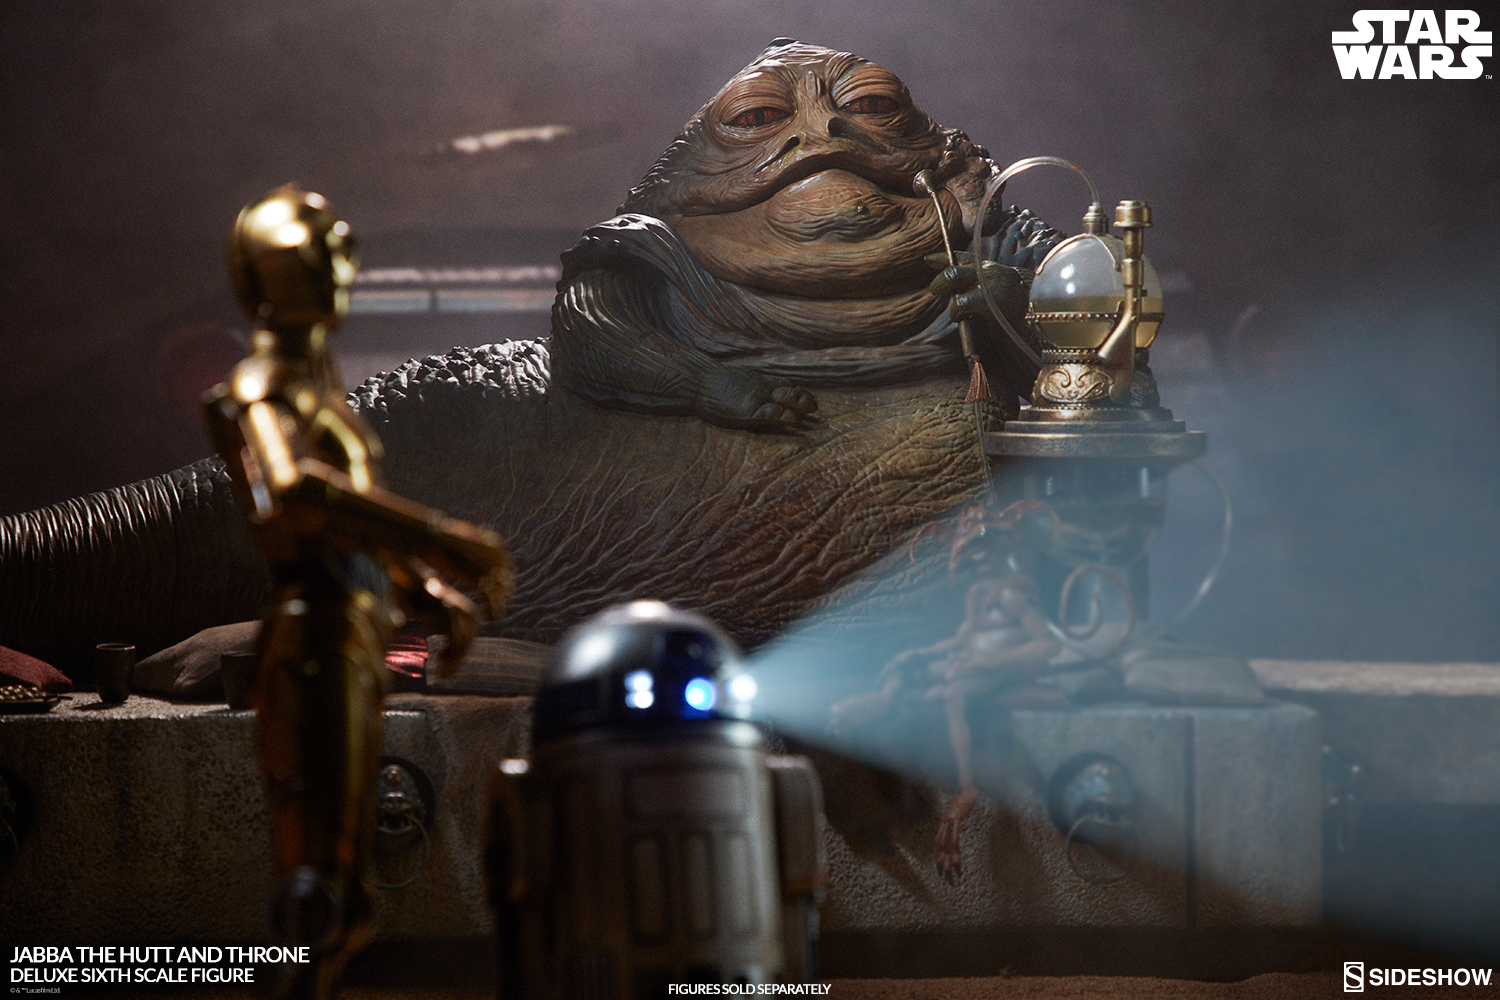 Behold The Illustrious Jabba The Hutt And Throne Deluxe Sixth Scale Figure Set